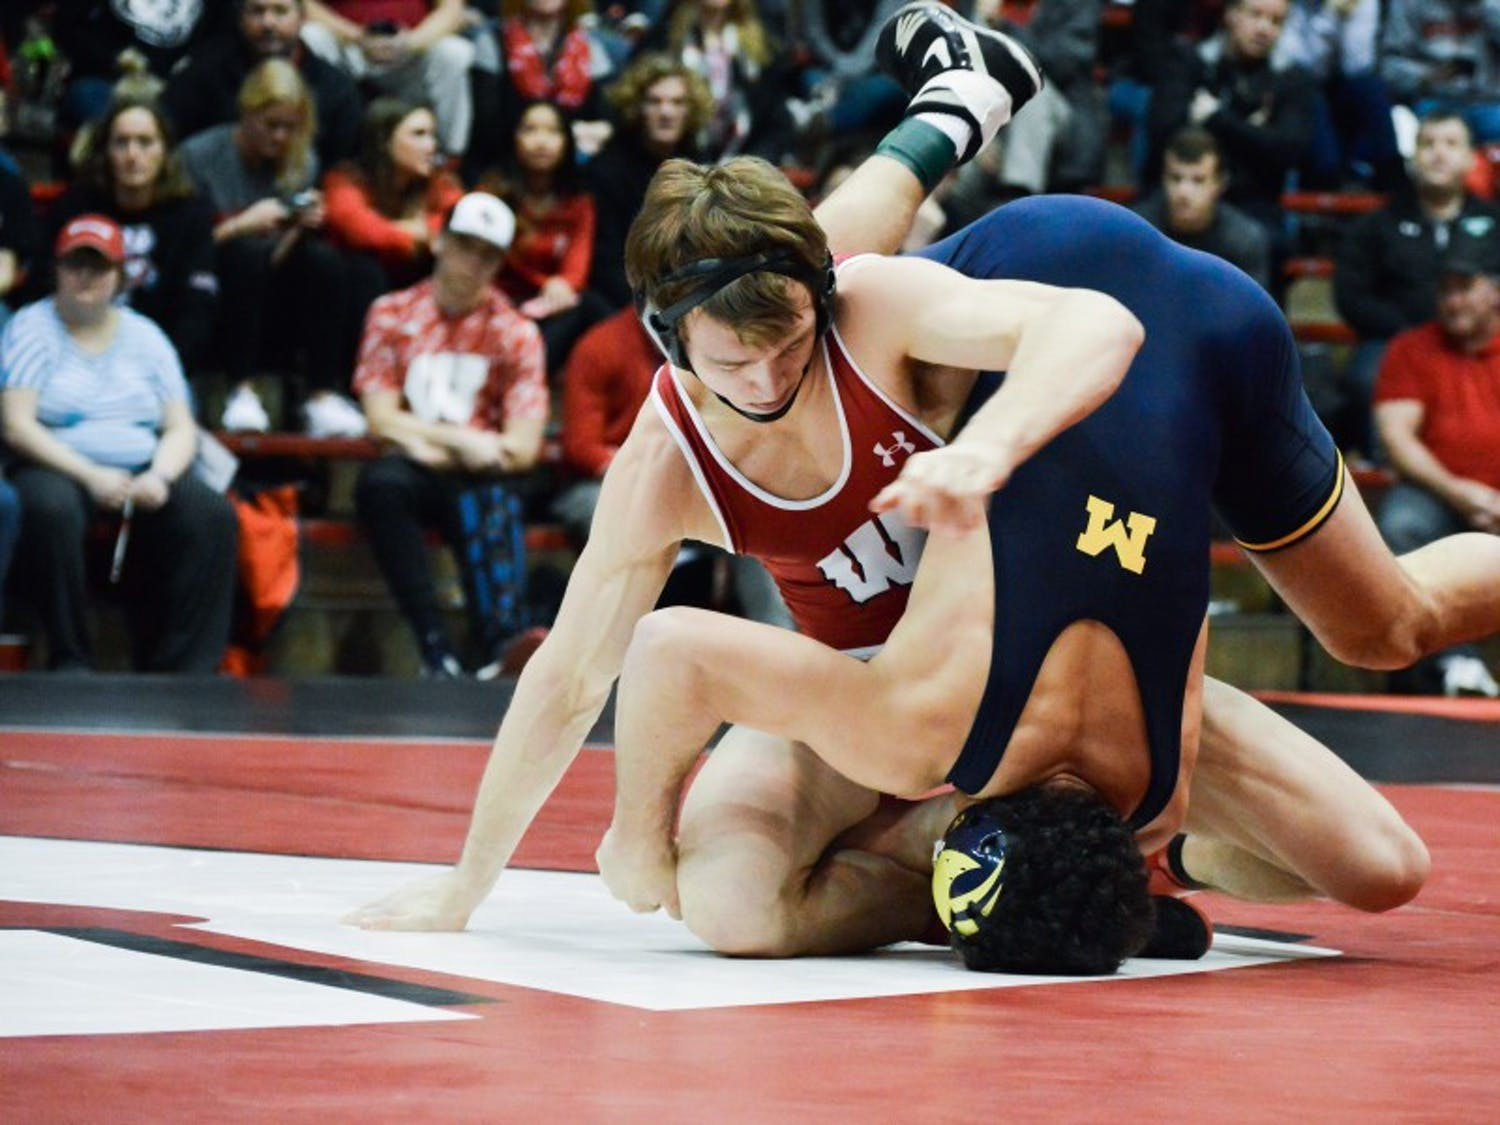 Wisconsin has only two regular season matches left against Rutgers and Purdue.